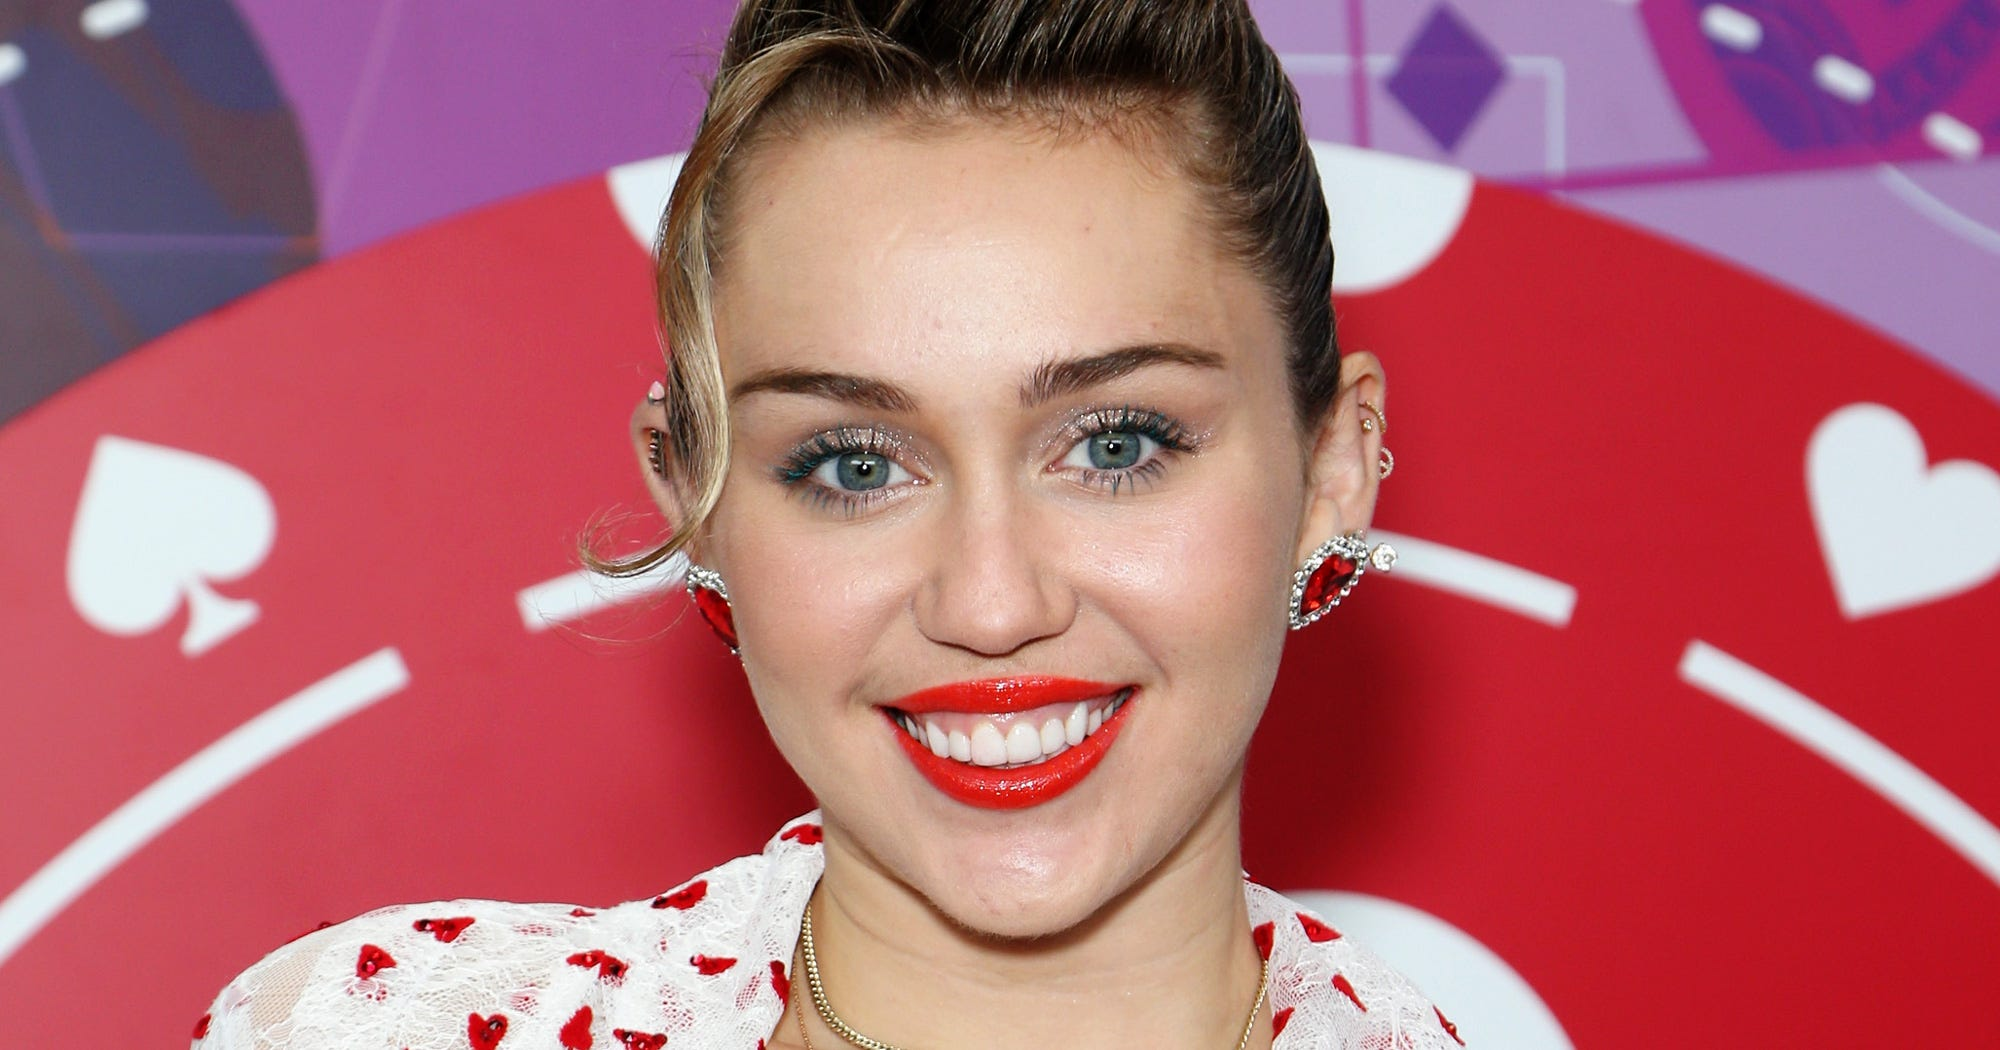 Miley Cyrus Younger Now Album Hannah Montana Instagram